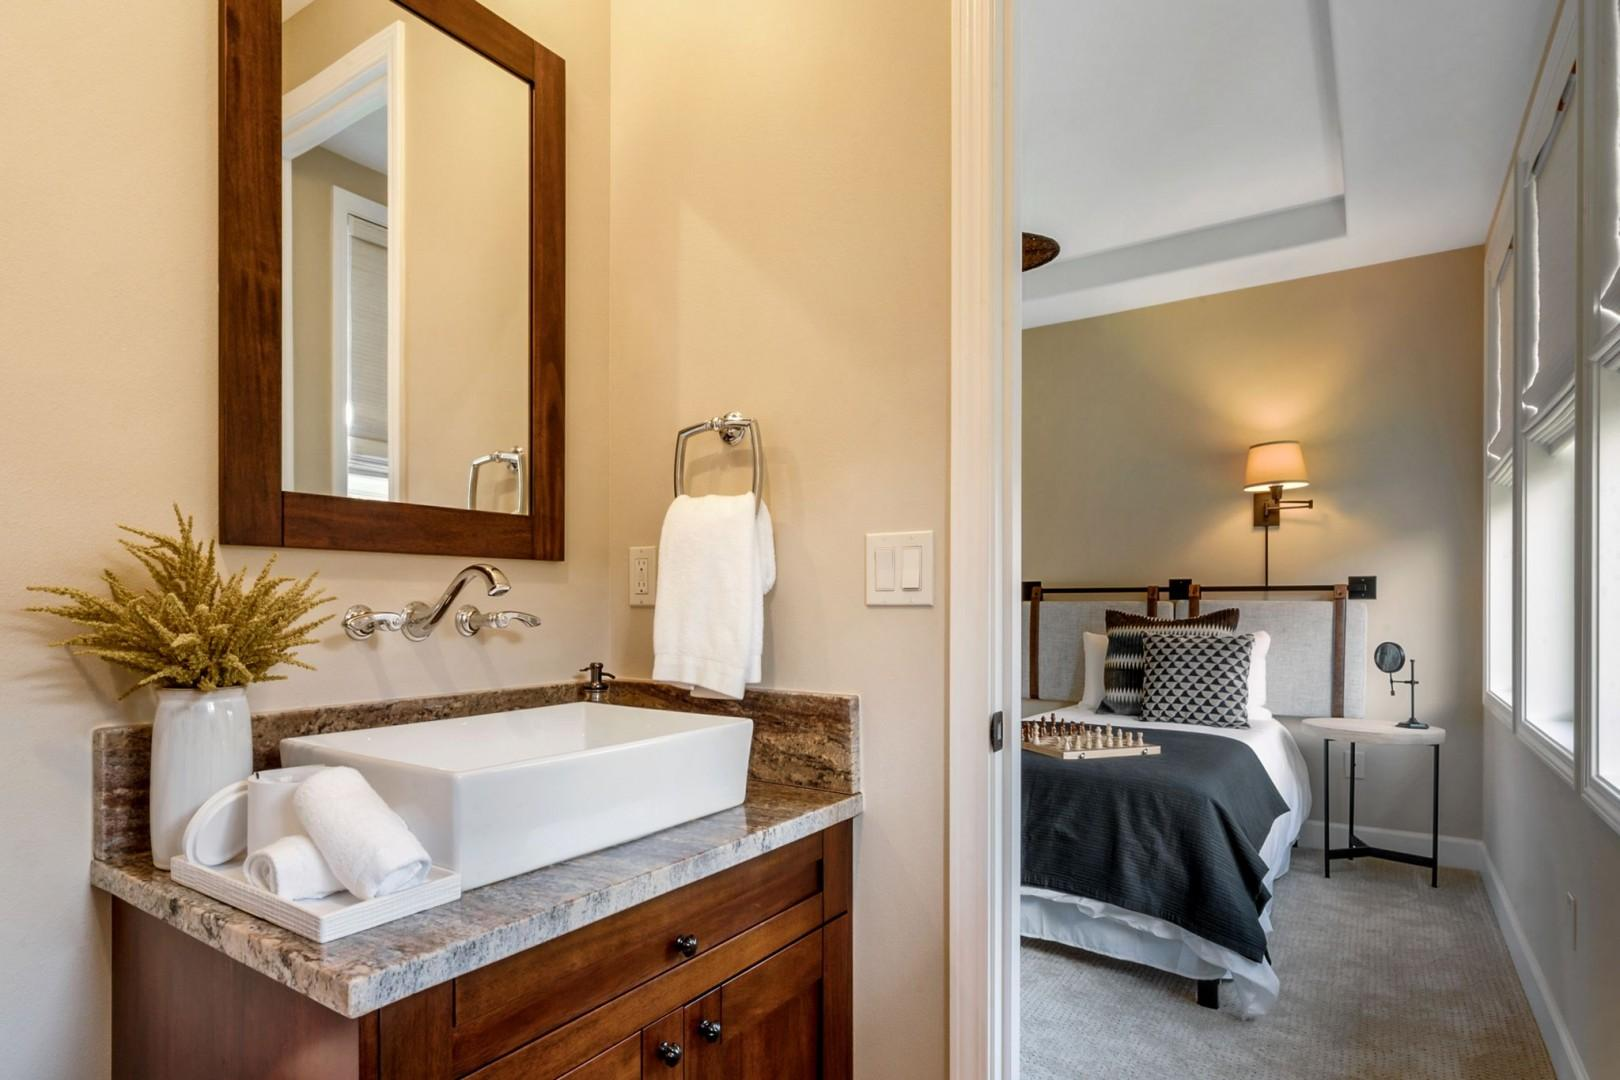 Ensuite is steps from the sleeping area